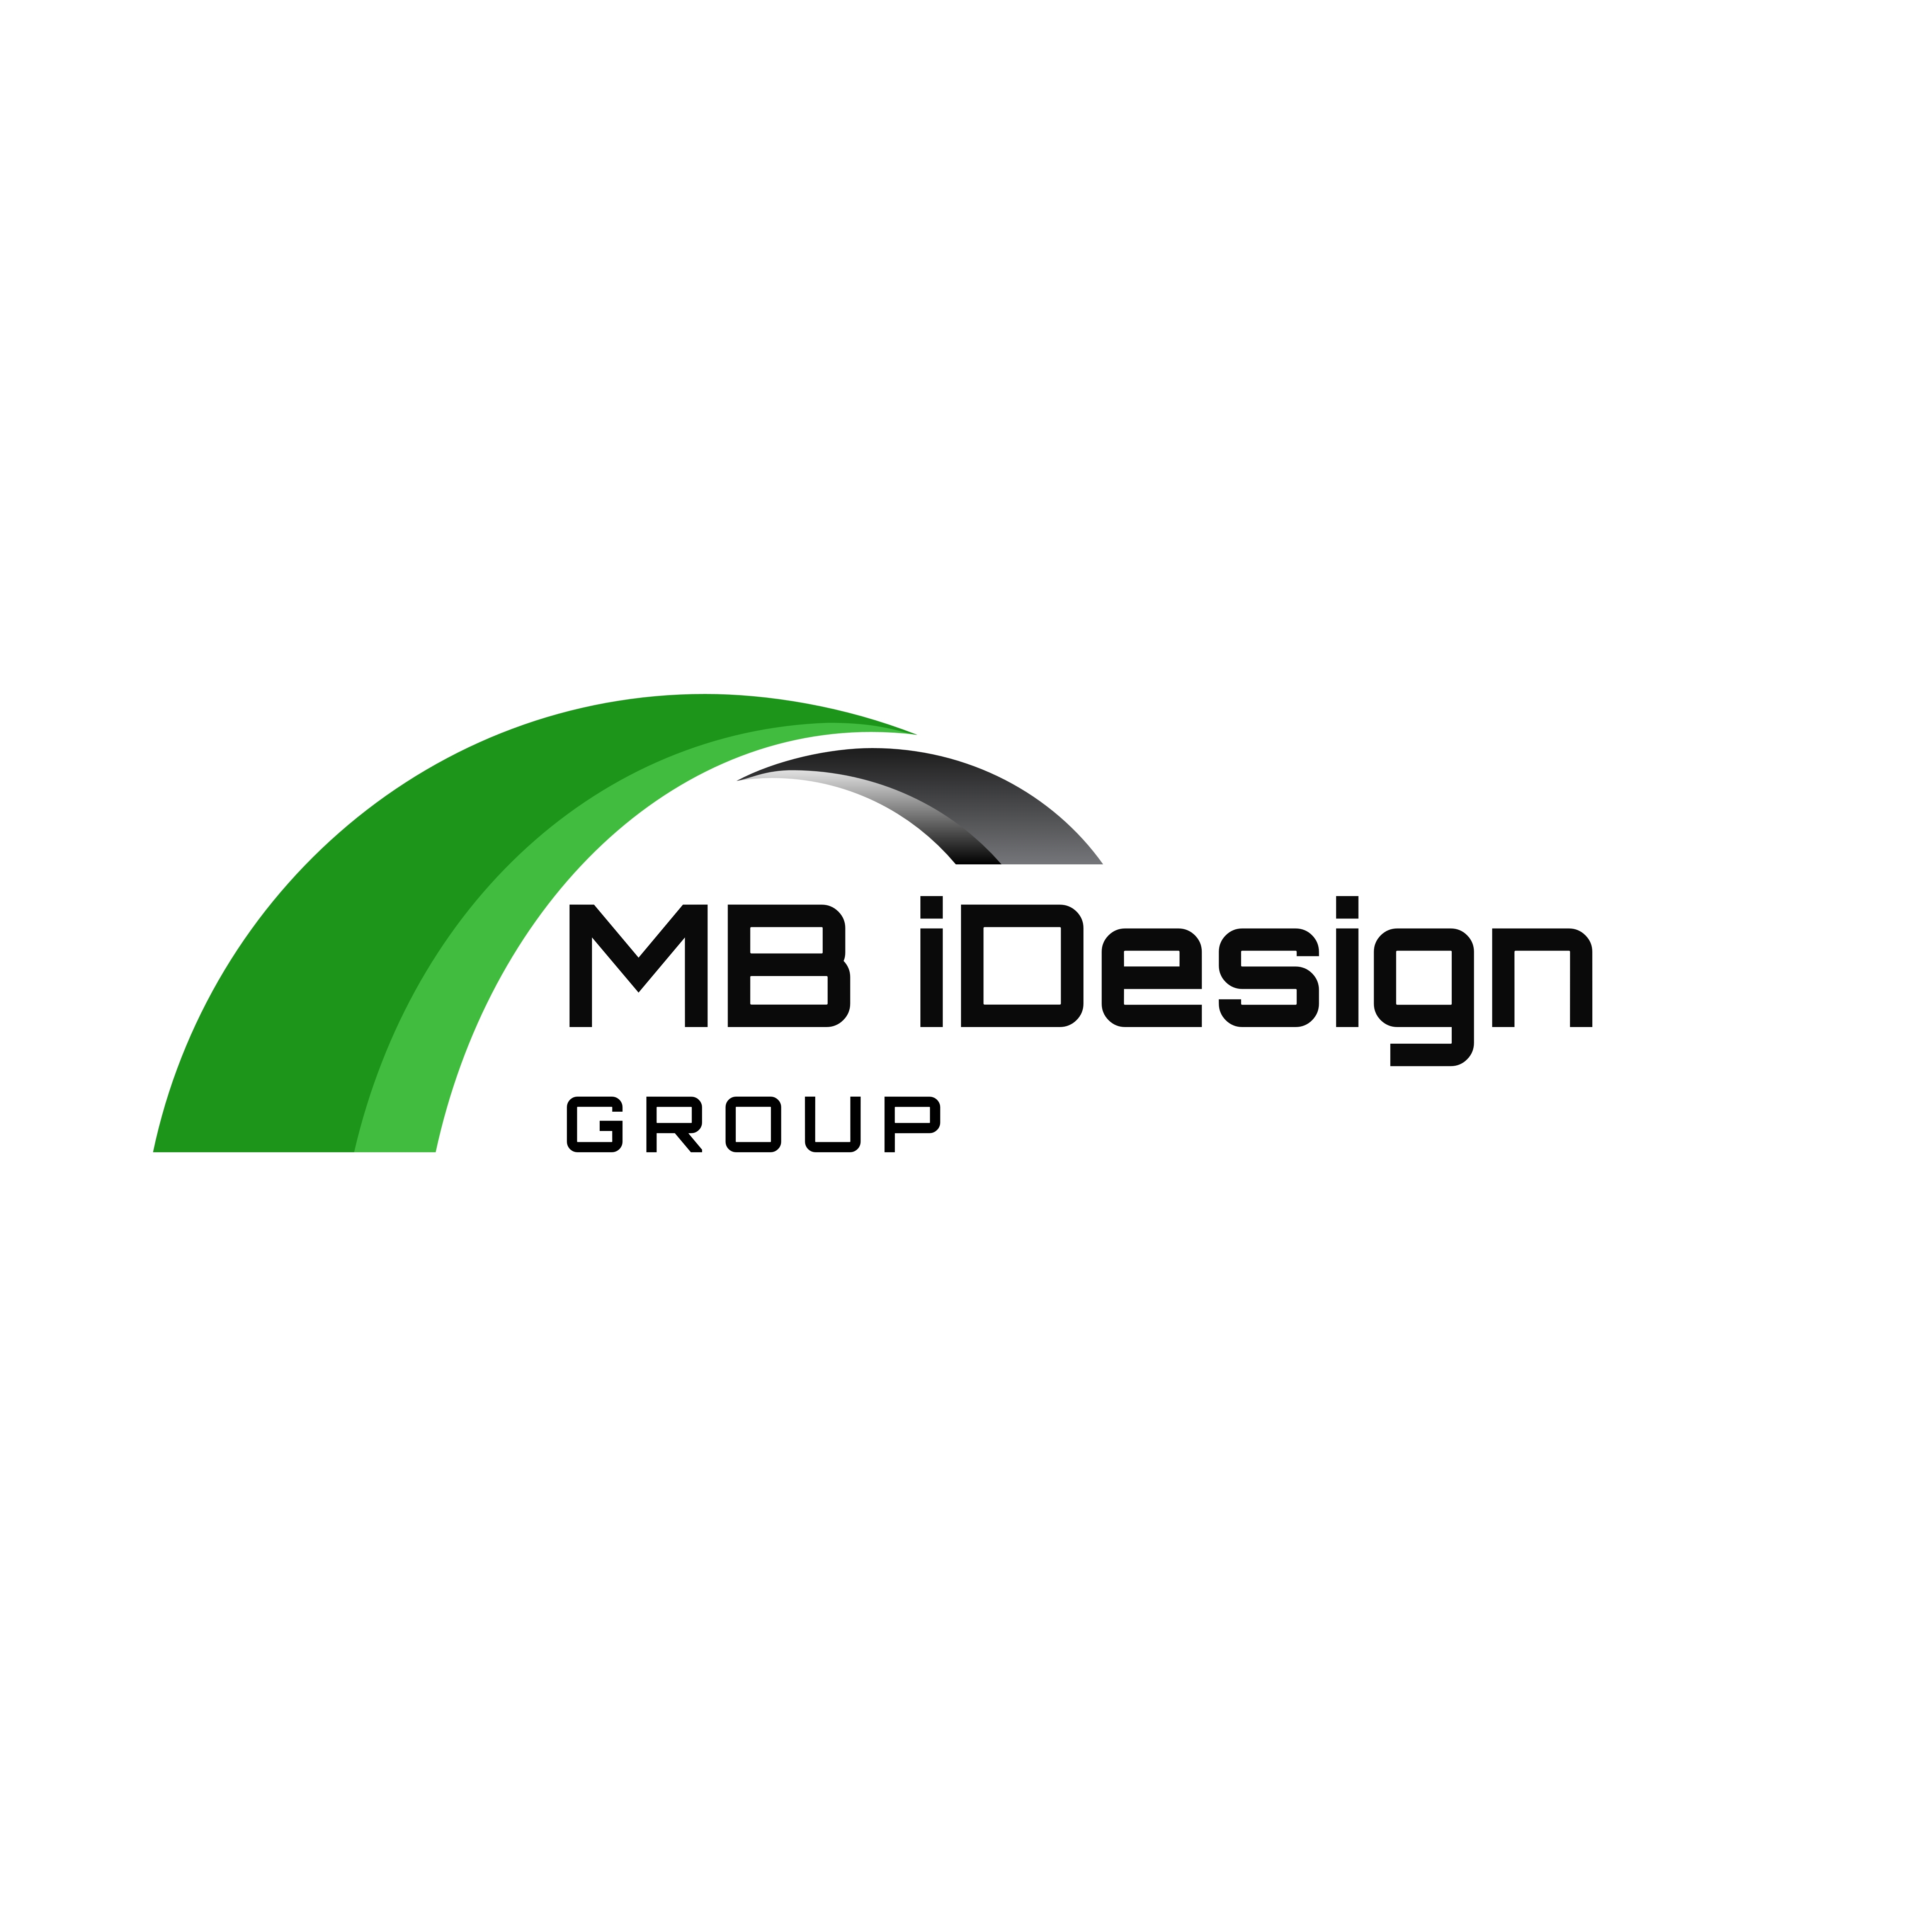 MB iDesign Group a.s.